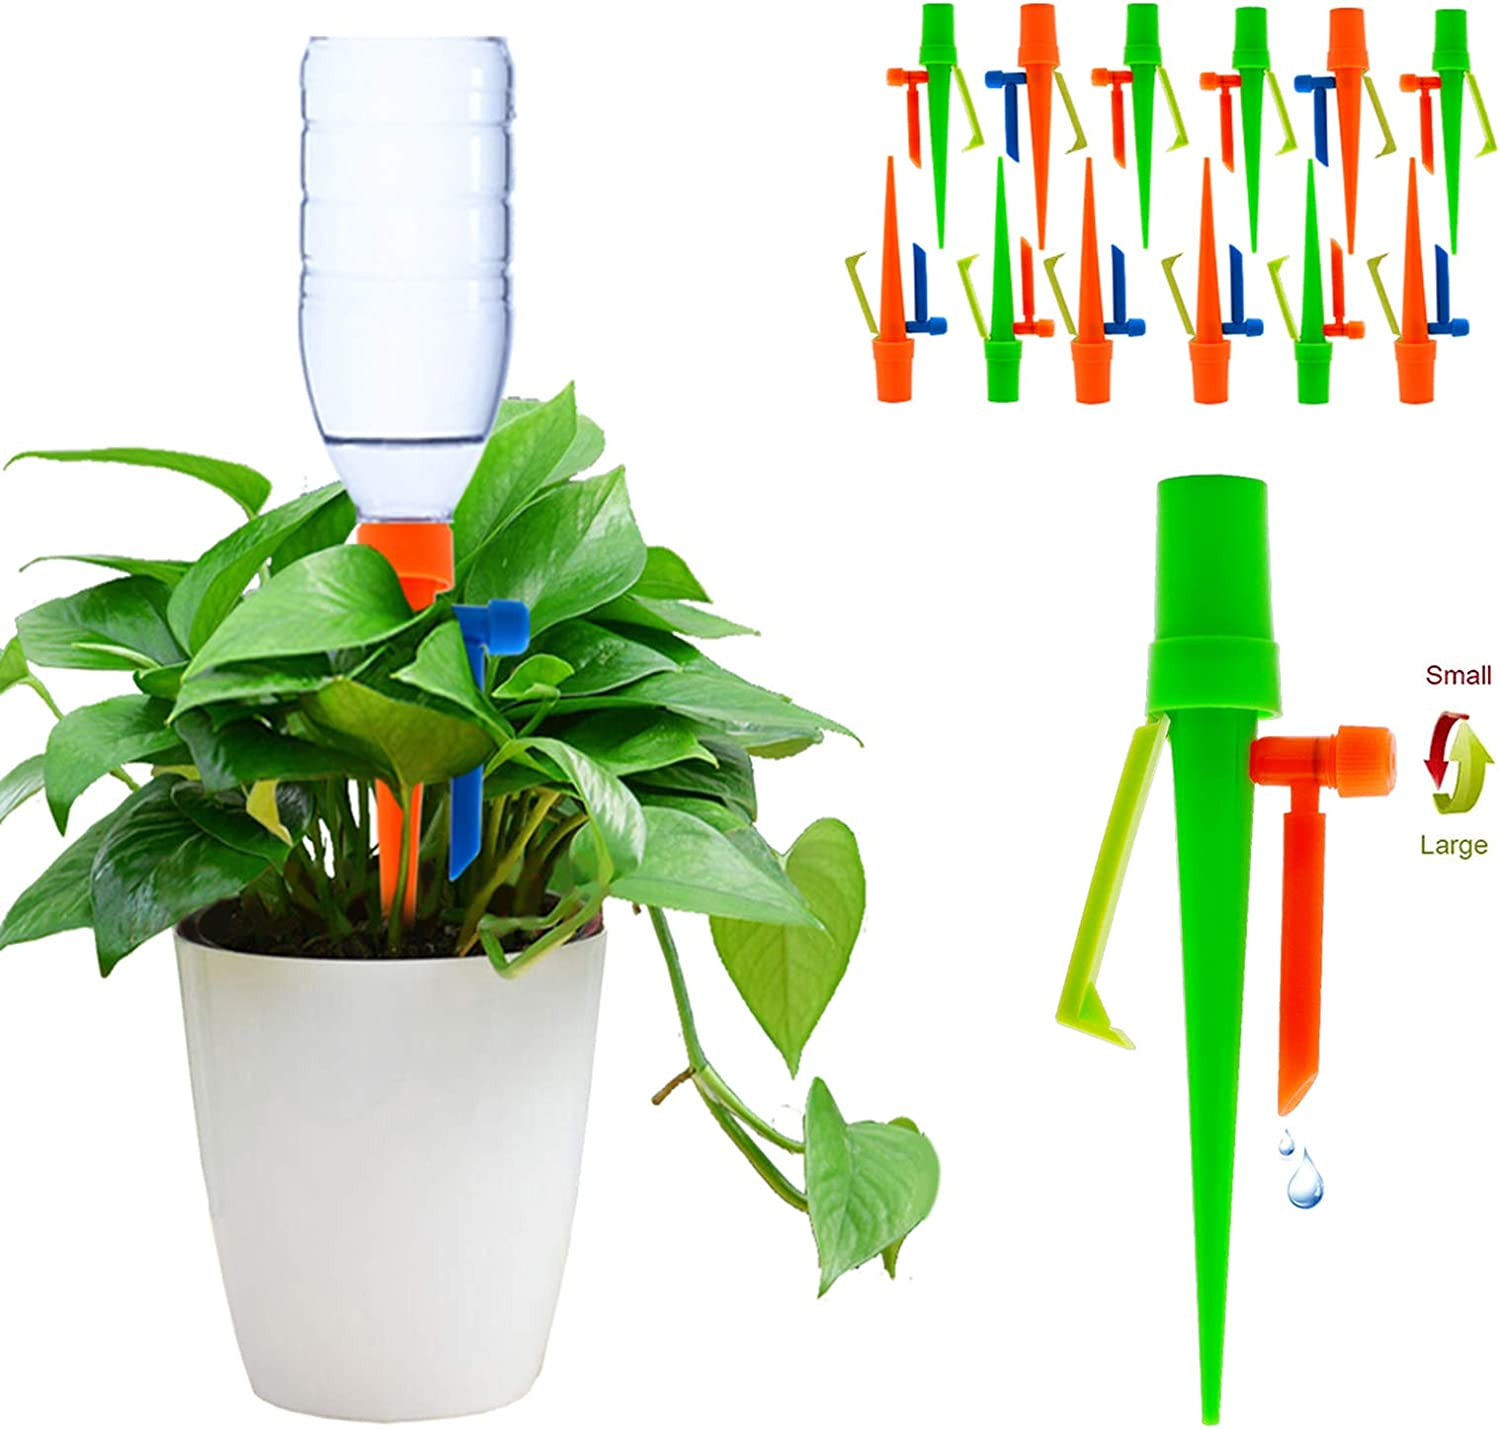 【2020 NEW】 2021 autumn and winter new Plant Self Spikes Watering Non-stop System Popular